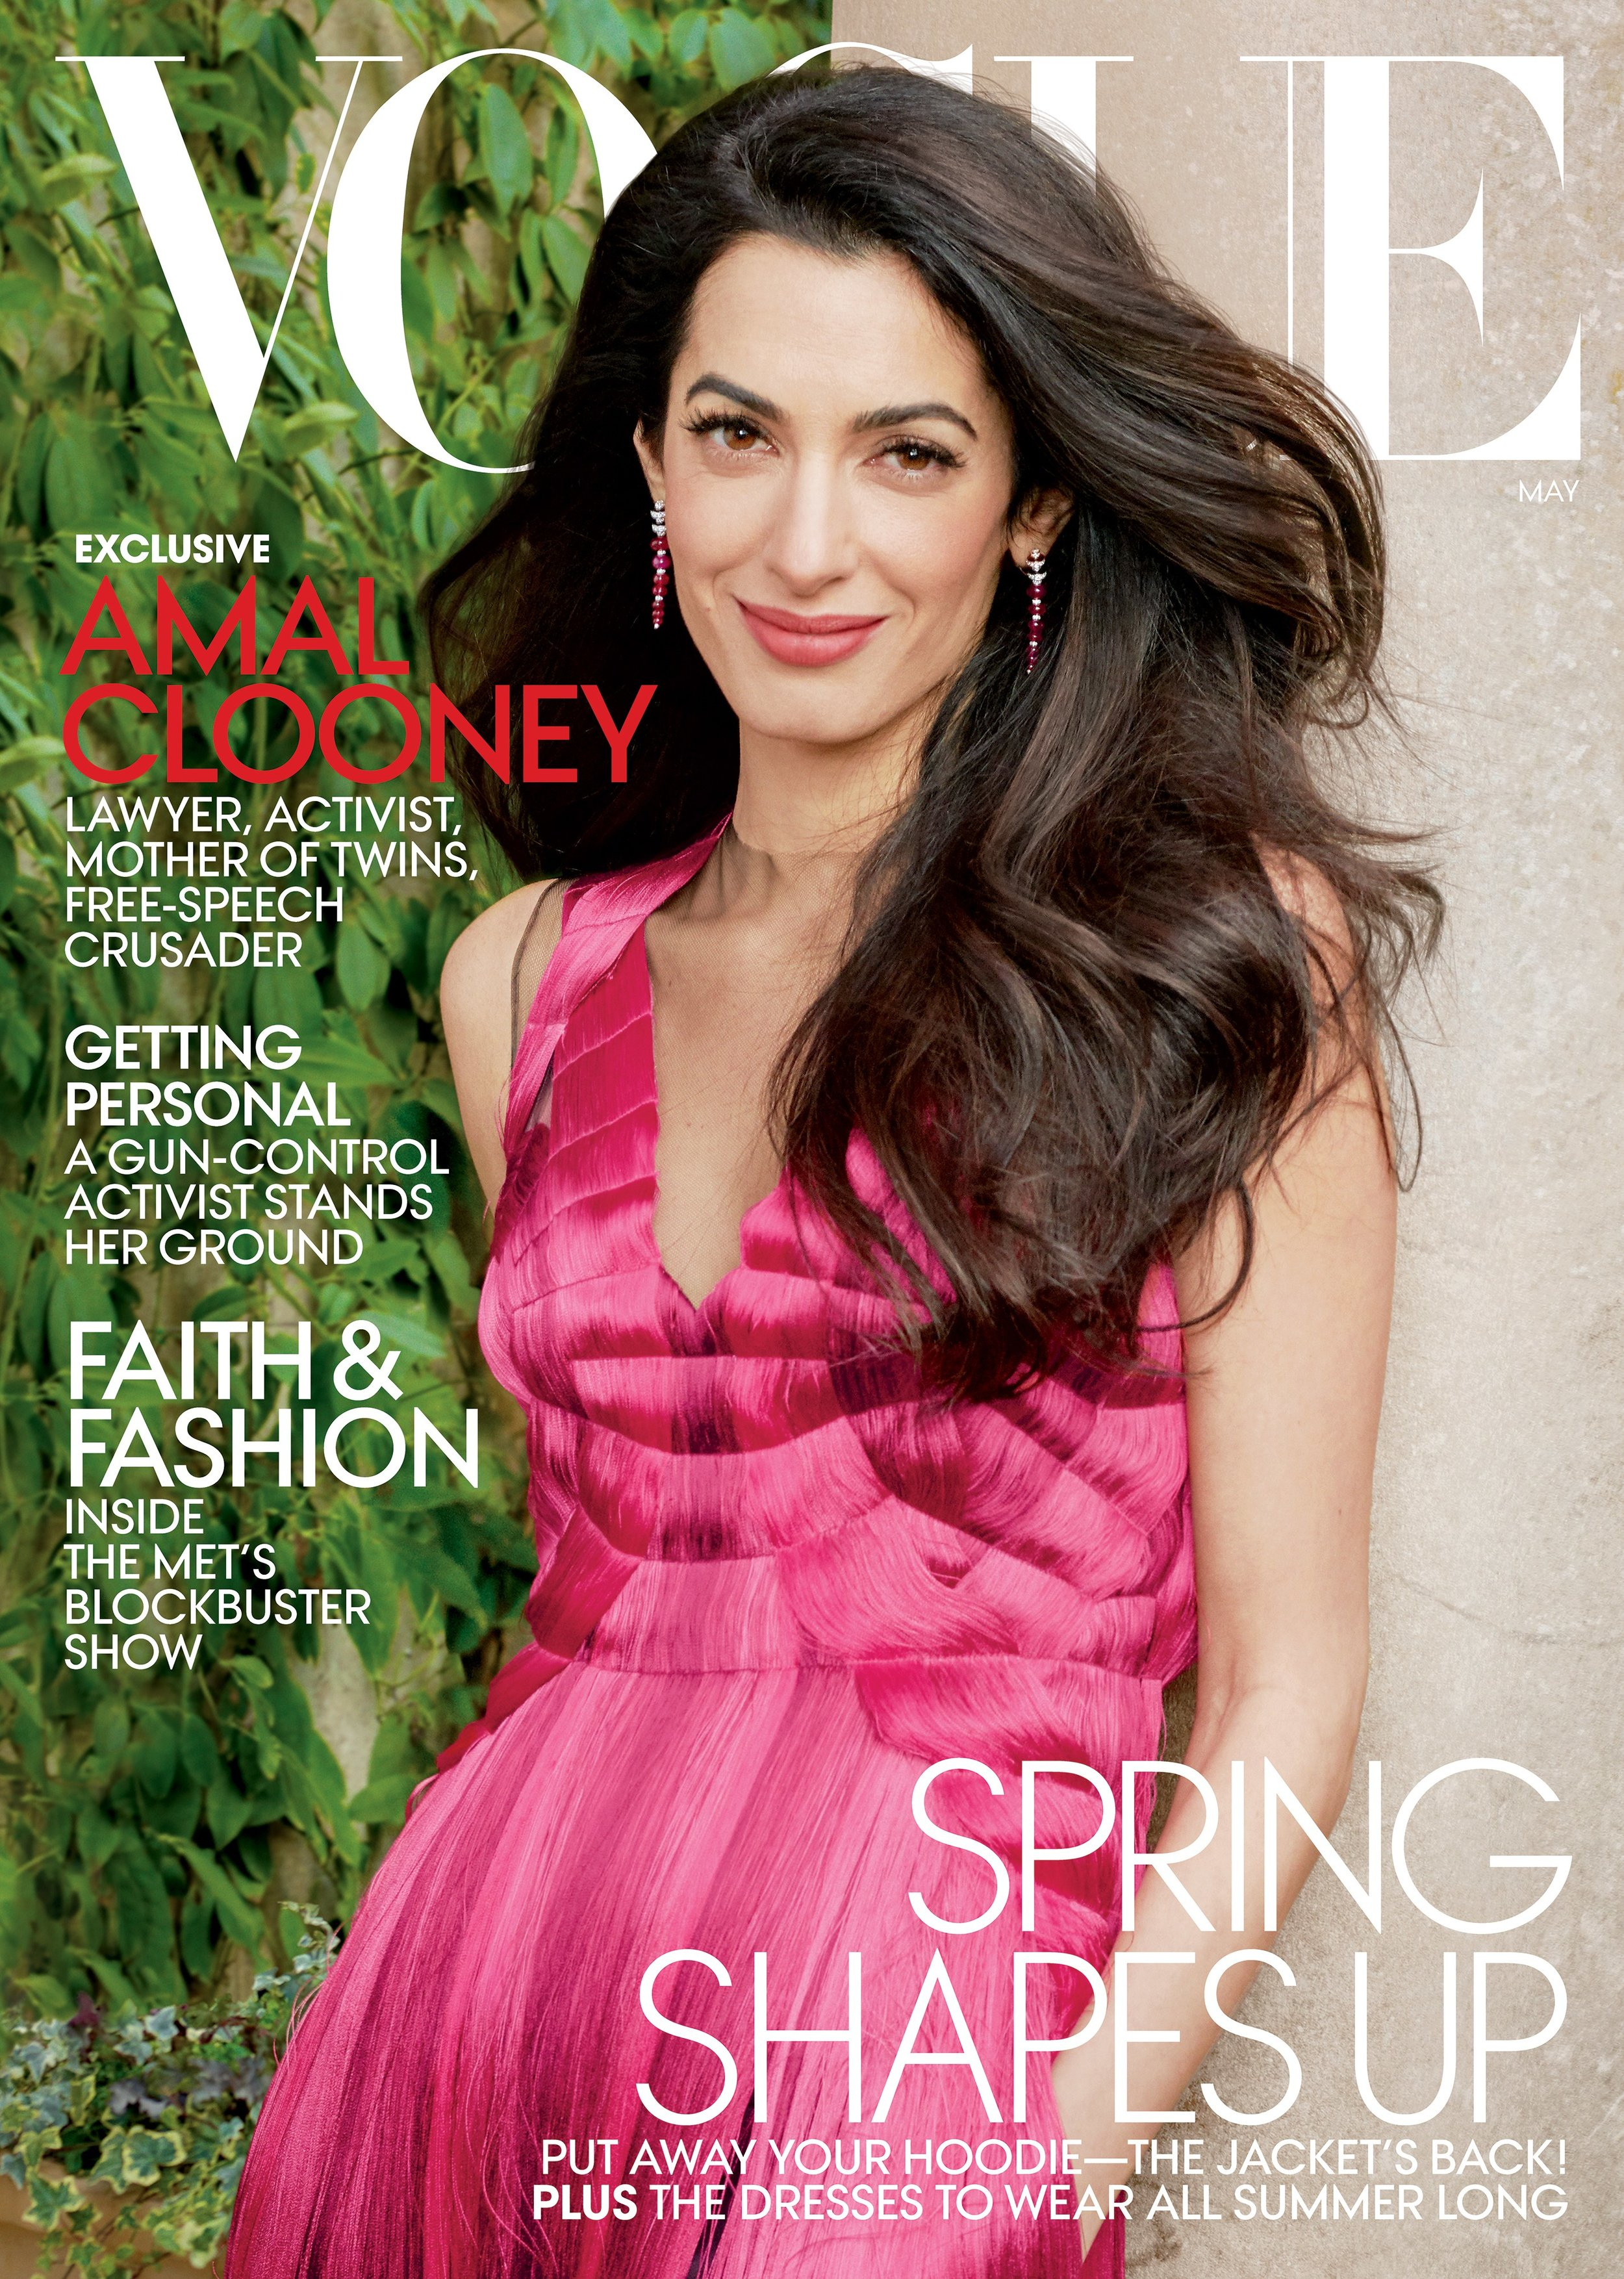 07-amal-clooney-vogue-cover-may-2018.jpg